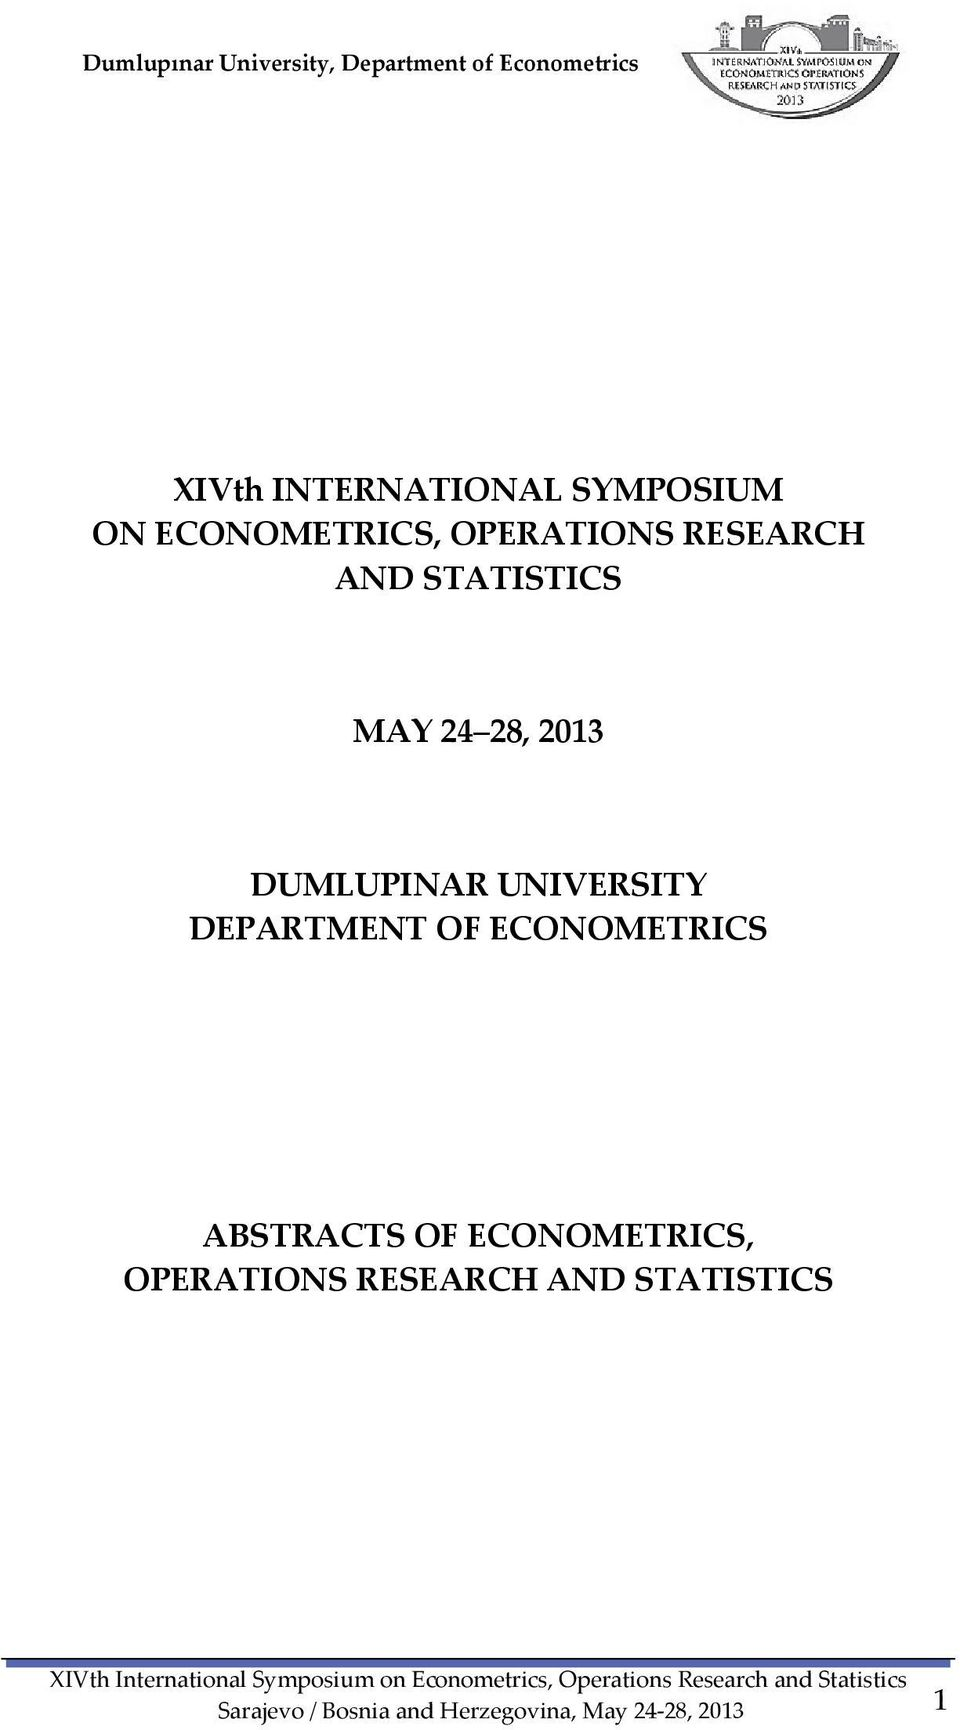 DEPARTMENT OF ECONOMETRICS ABSTRACTS OF ECONOMETRICS, OPERATIONS